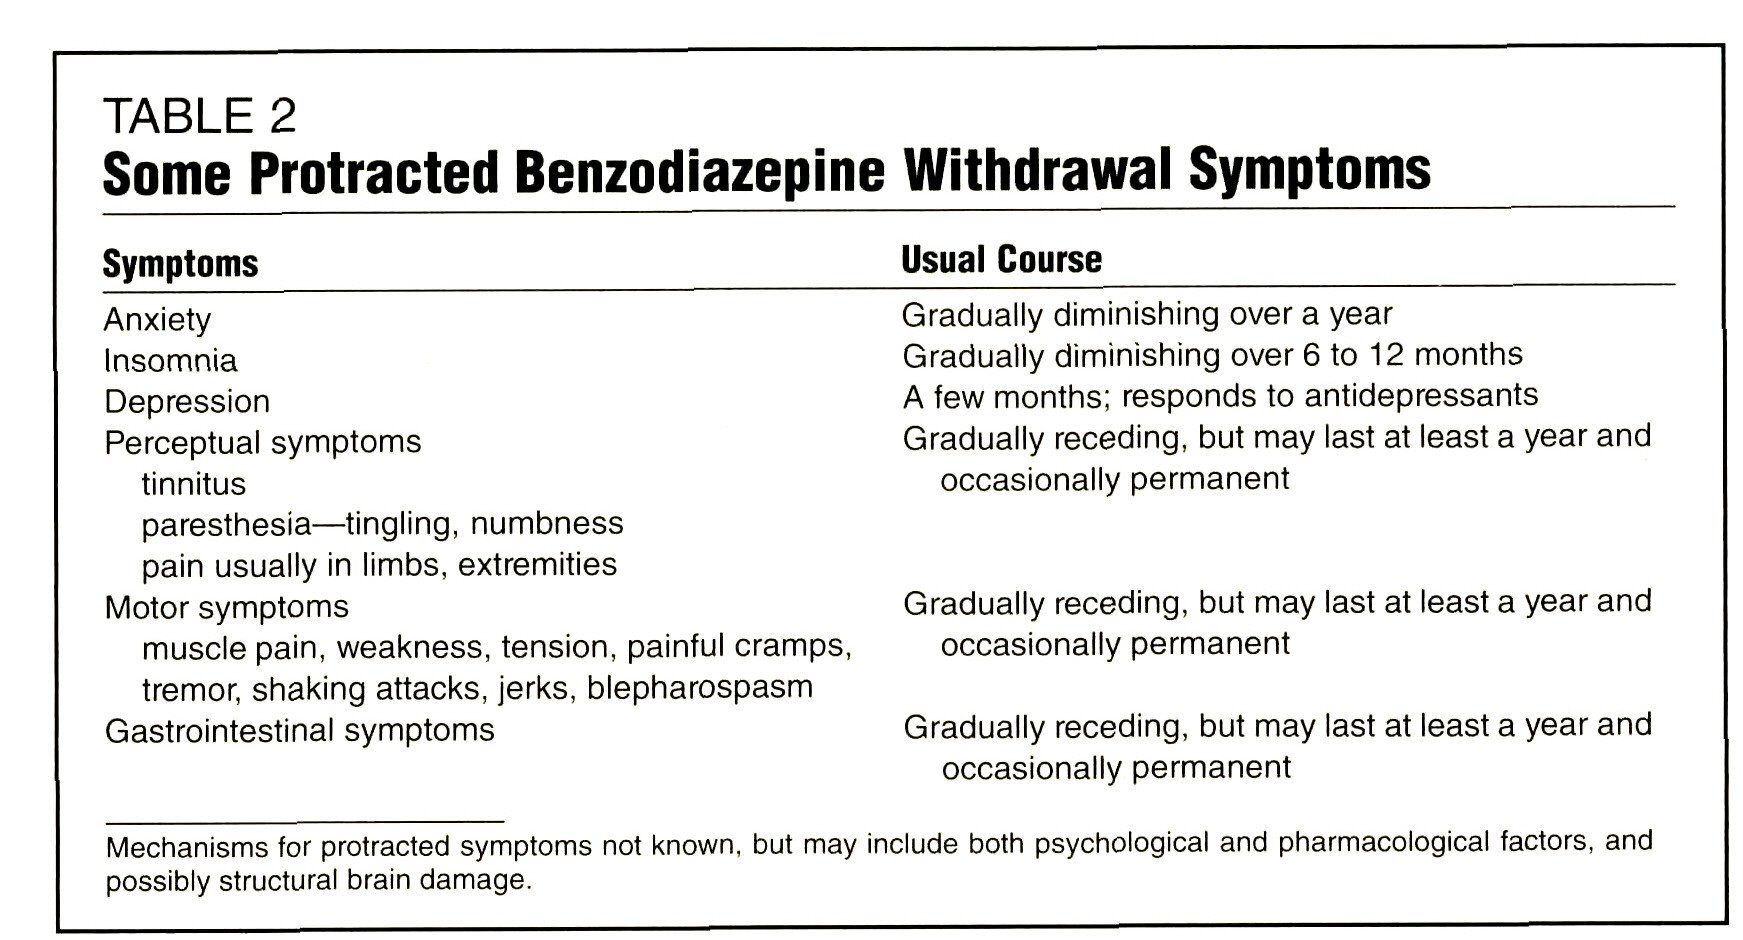 TABLE 2Some Protracted Benzodiazepine Withdrawal Symptoms